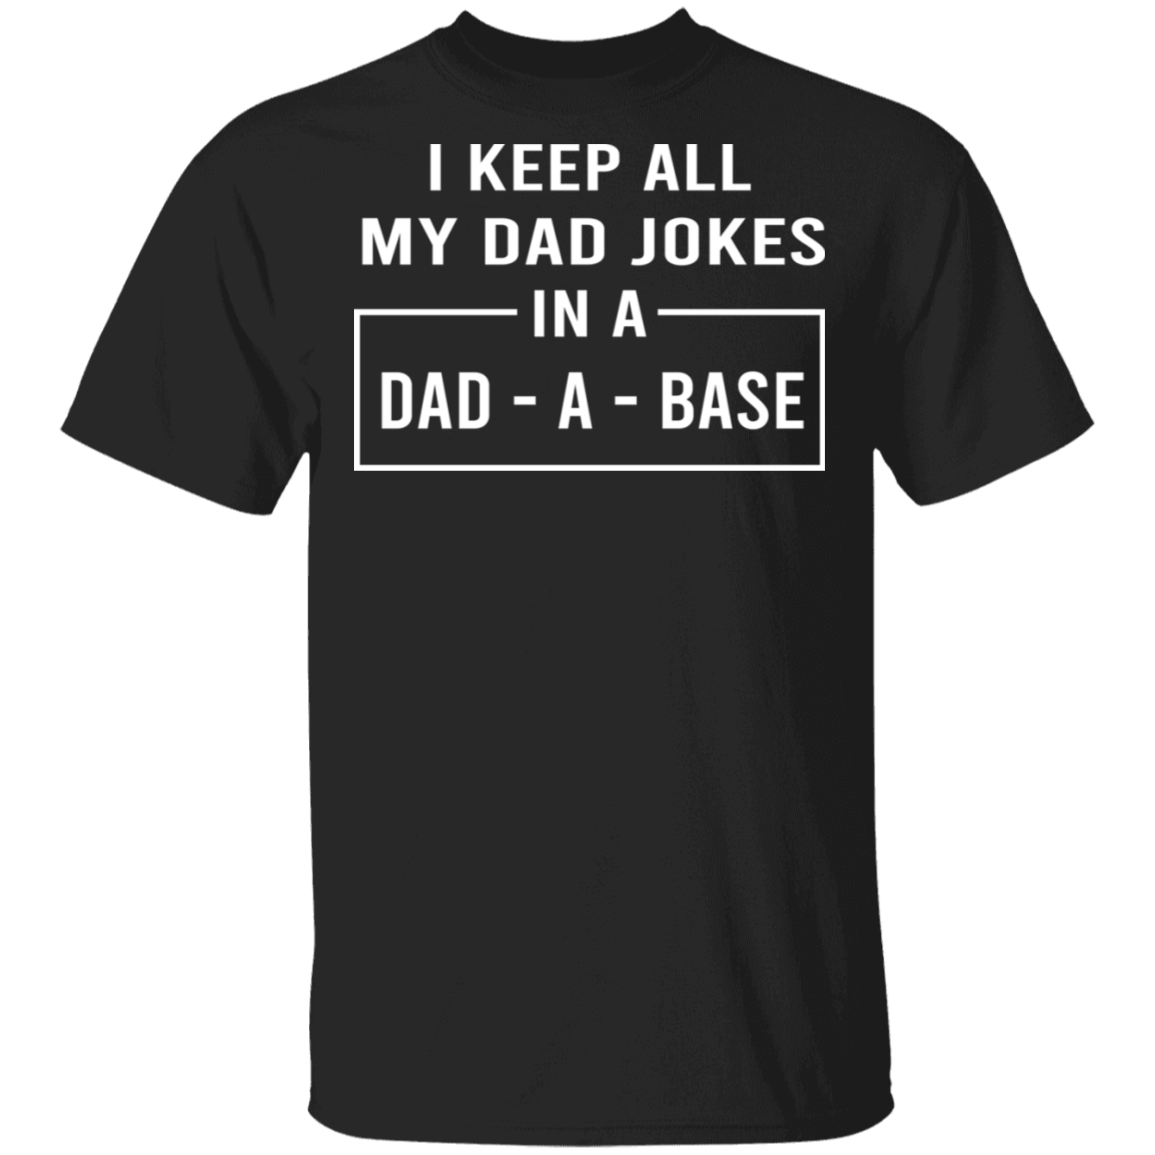 I Keep All My Dad Jokes In A Dad-A-Base T-Shirts, Hoodies 1049-9953-86219016-48144 - Tee Ript